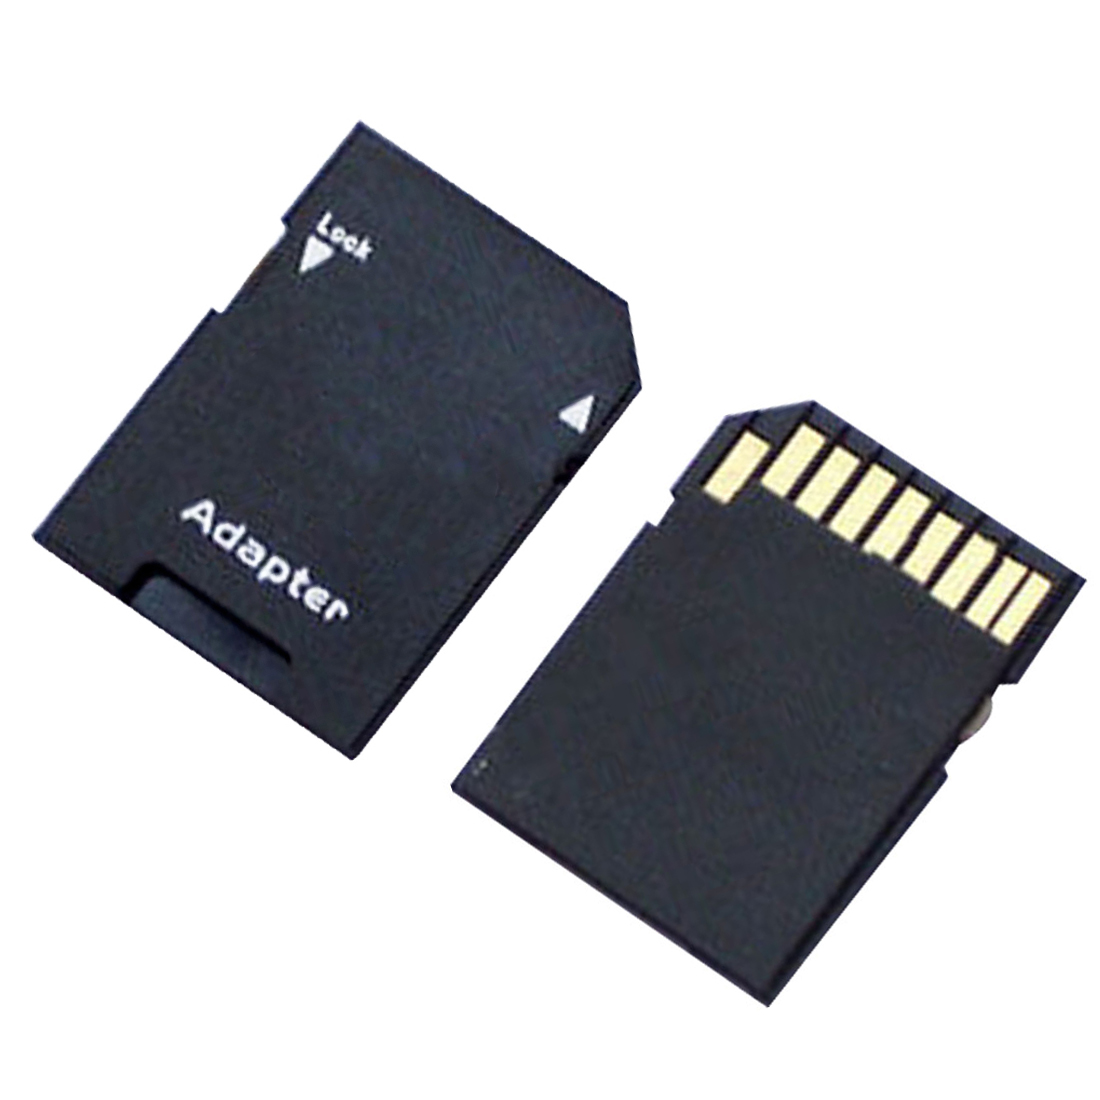 NOYOKERE 2PCS Hot Sale Popular Micro SD TransFlash TF To SD SDHC Memory Card Adapter Convert Into SD Card